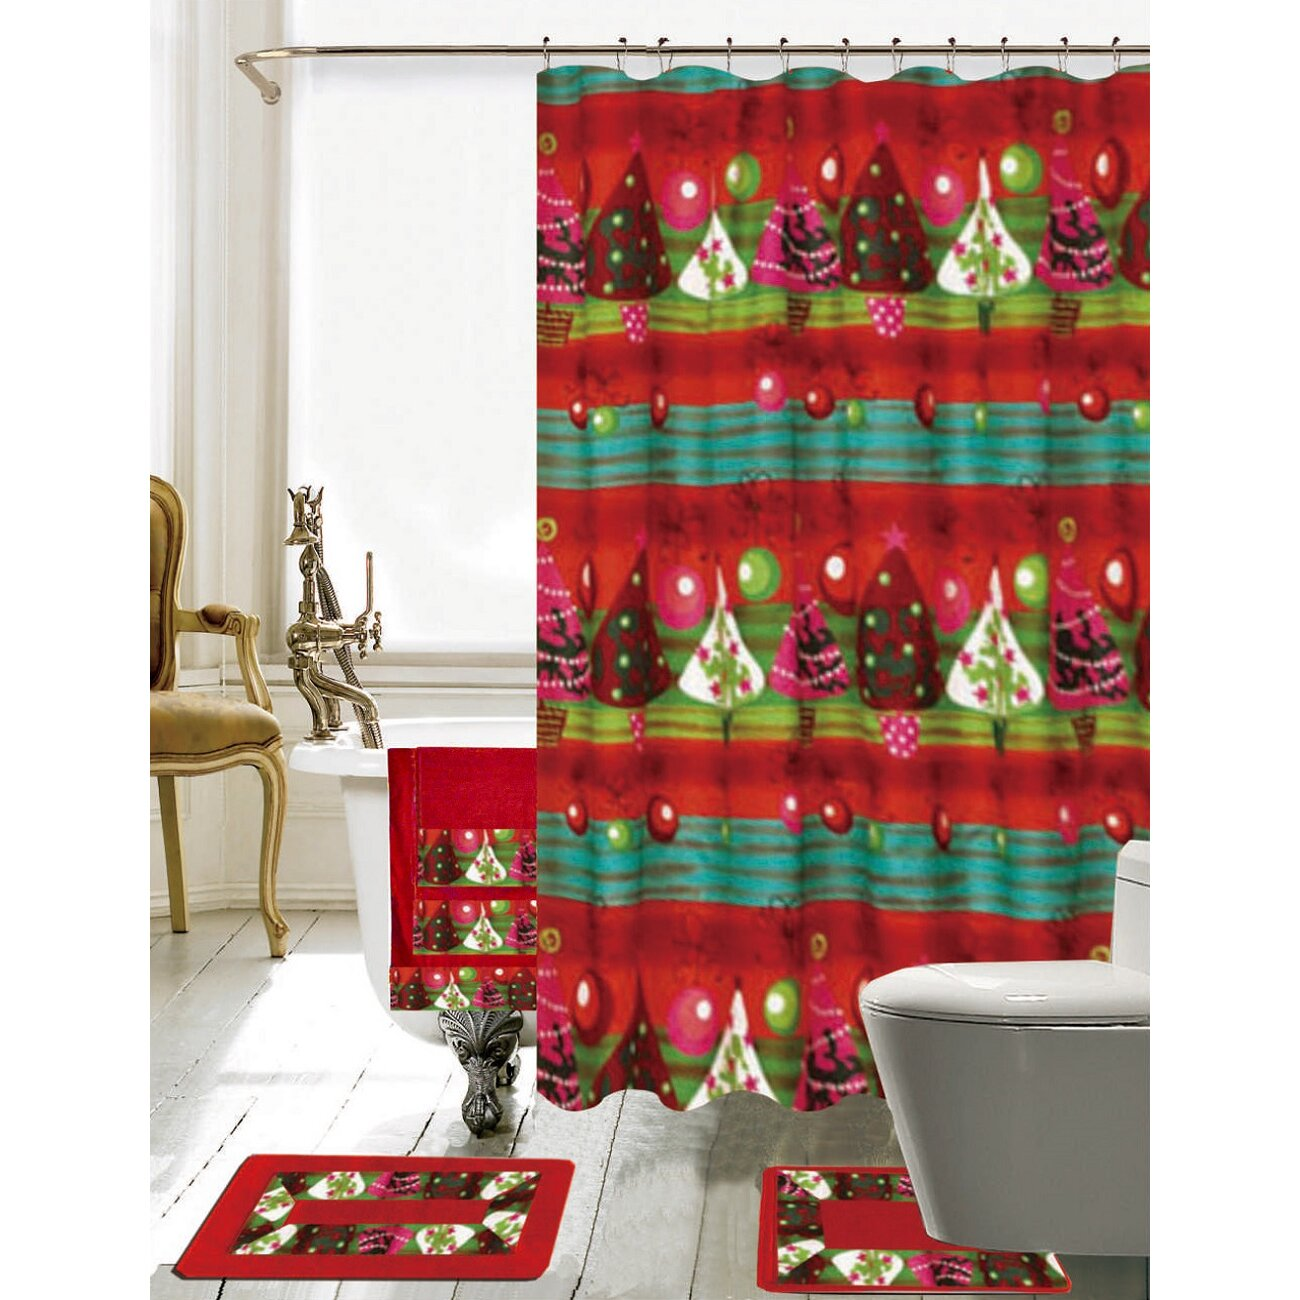 Xmas bathroom decor - Daniels Bath Christmas Bathroom Decor 18 Piece Shower Santa